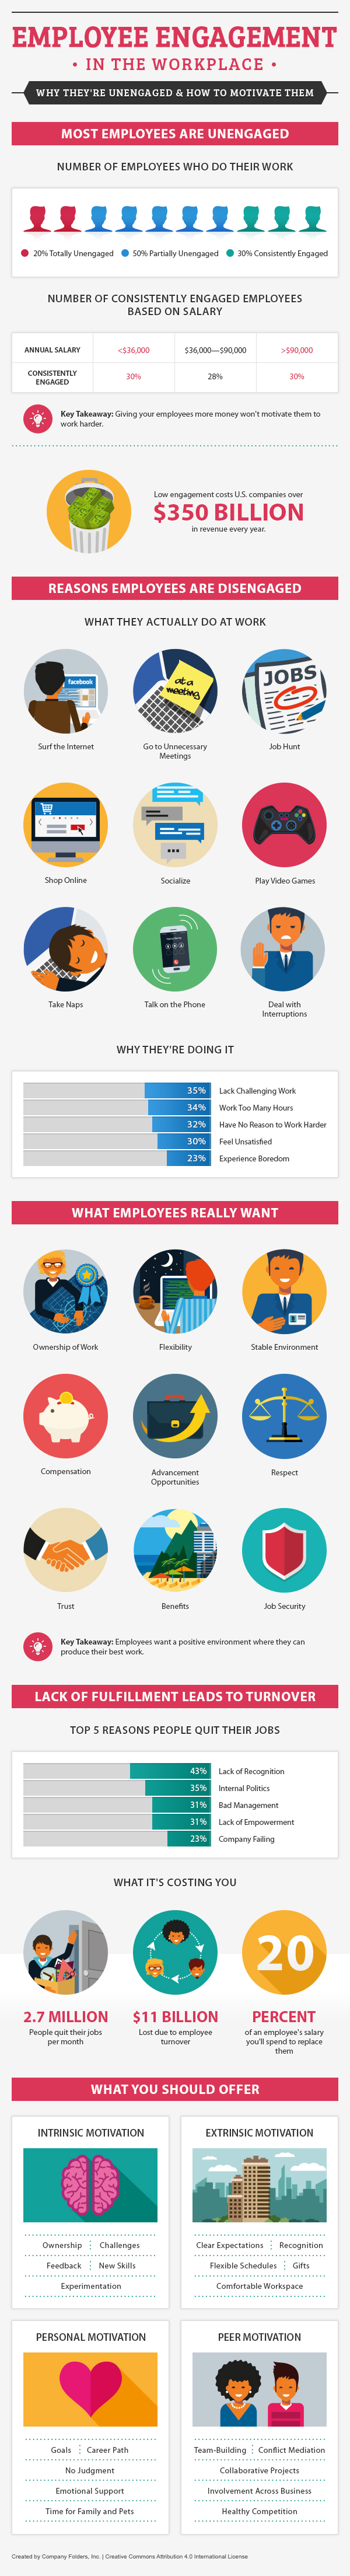 Employye Engagement in the Workplace - Take It Personel-ly